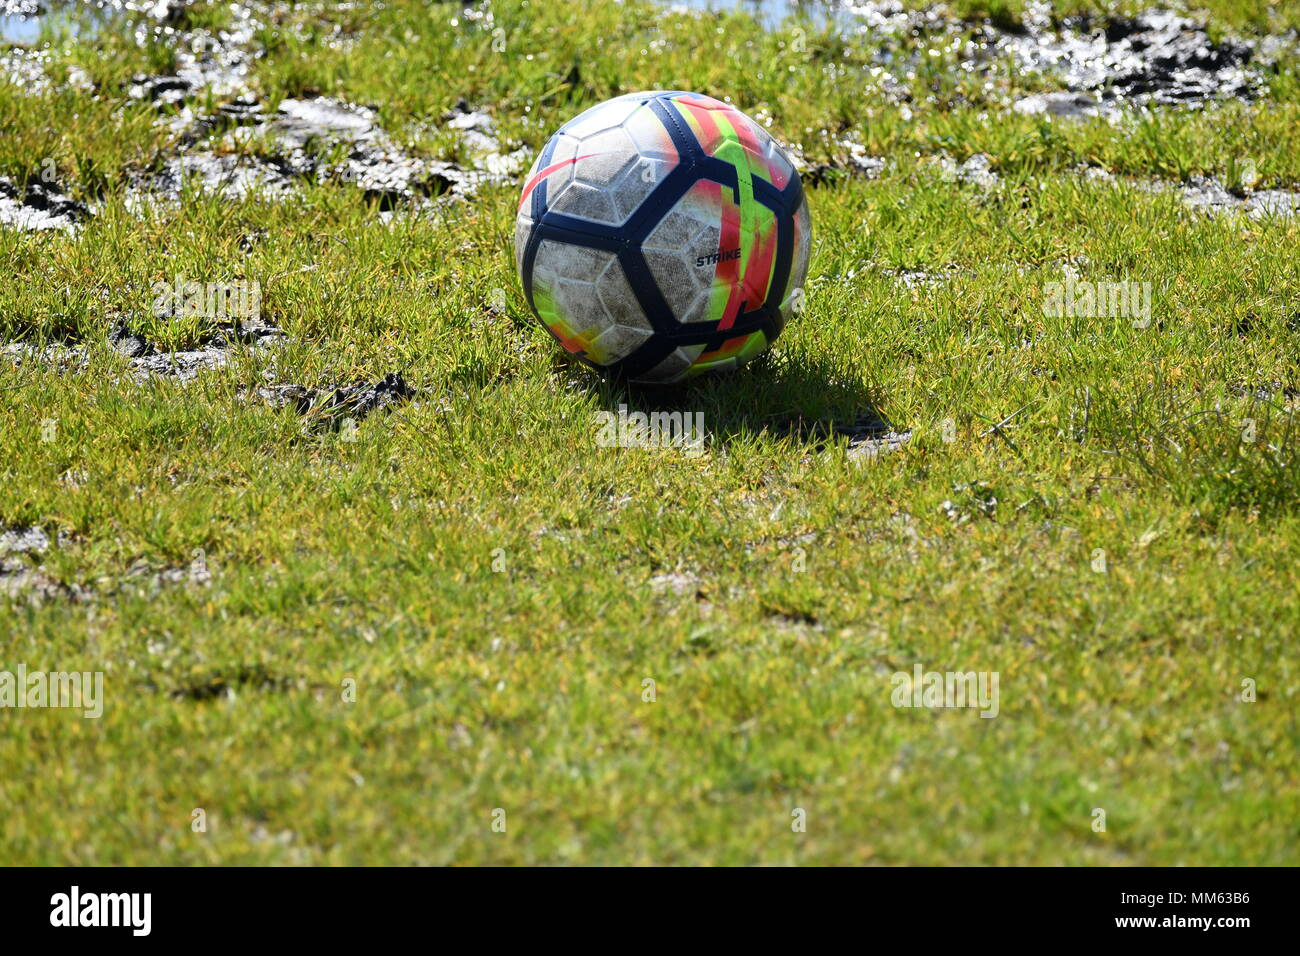 Waterlogged football pitch - Stock Image